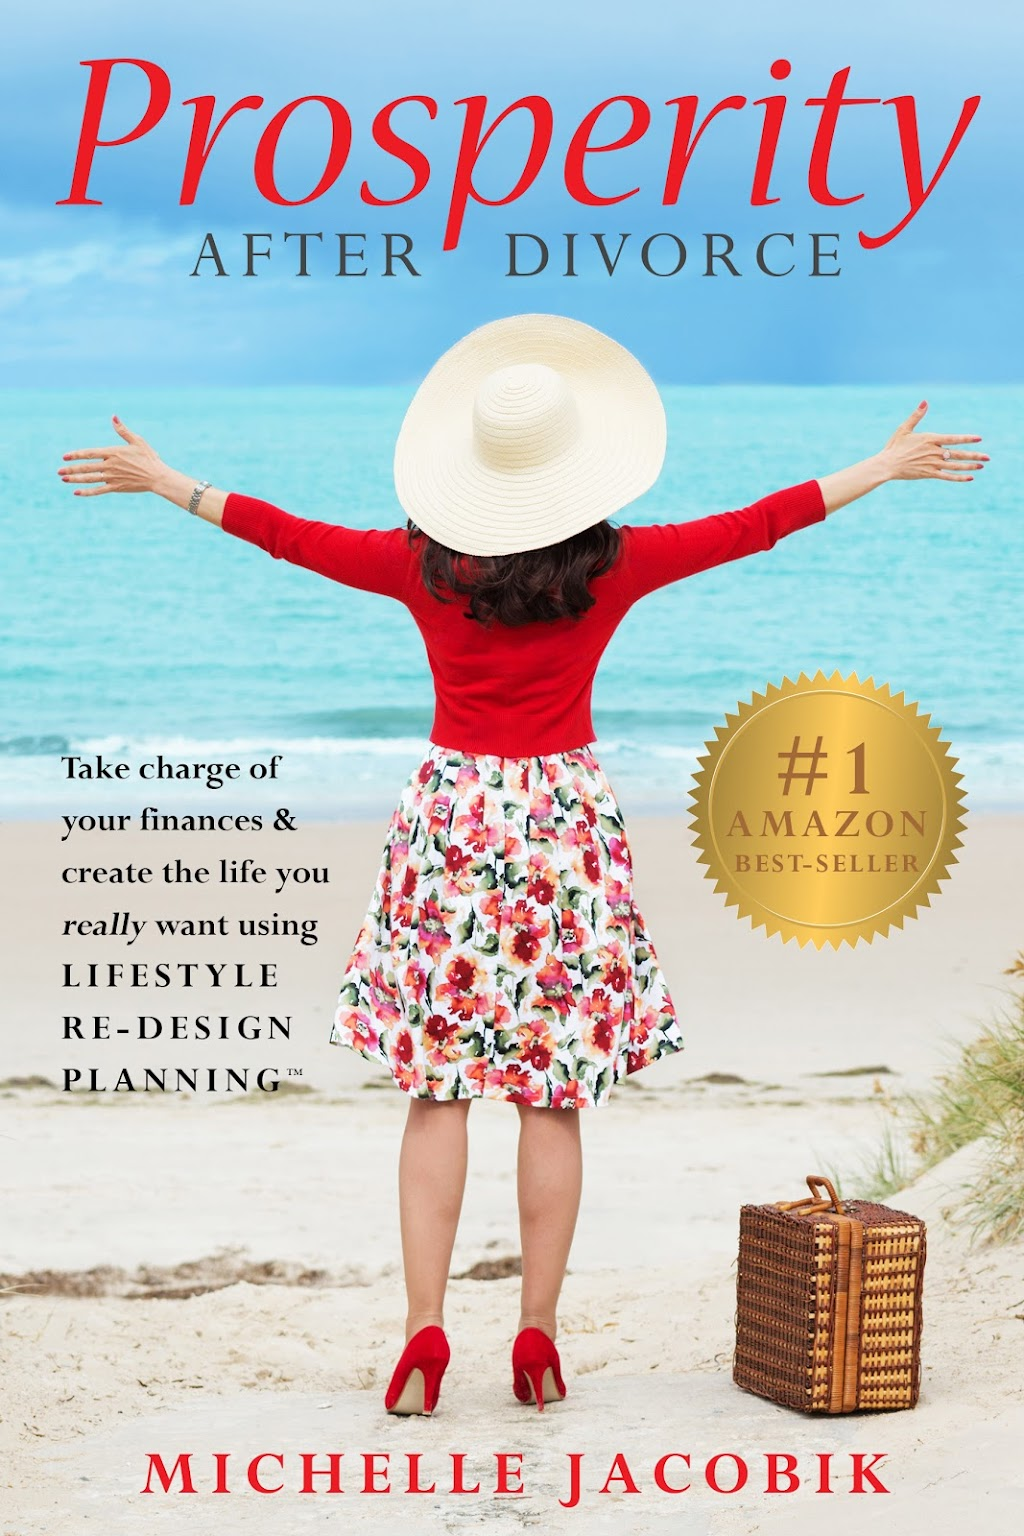 books about moving on after divorce